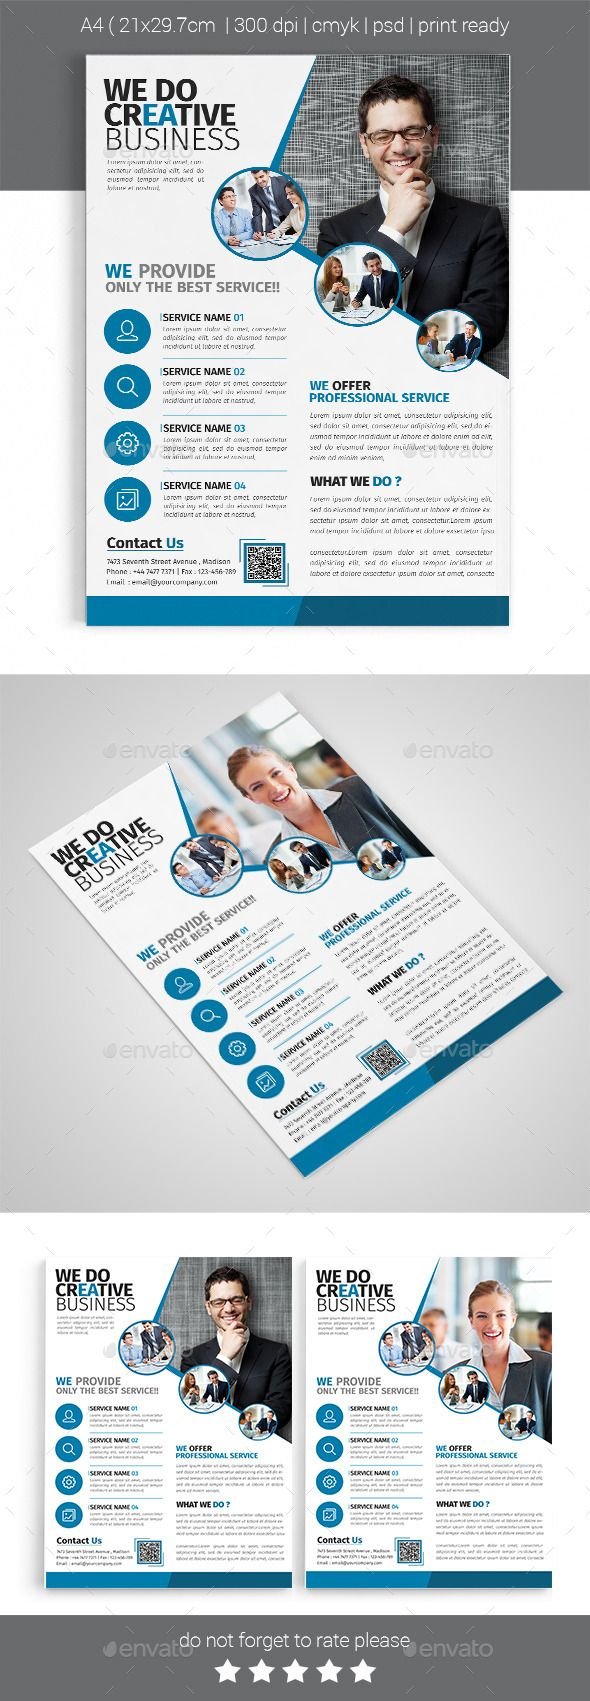 A4 Corporate Business Flyer Template Vol 10. Print-templates Flyers Corporate. To help find this a5, ad, business, clean, color, corporate, development, flyer, market, marketing, multipurpose, network, sale, scheme, seo, shopping, social, technology, and trading.